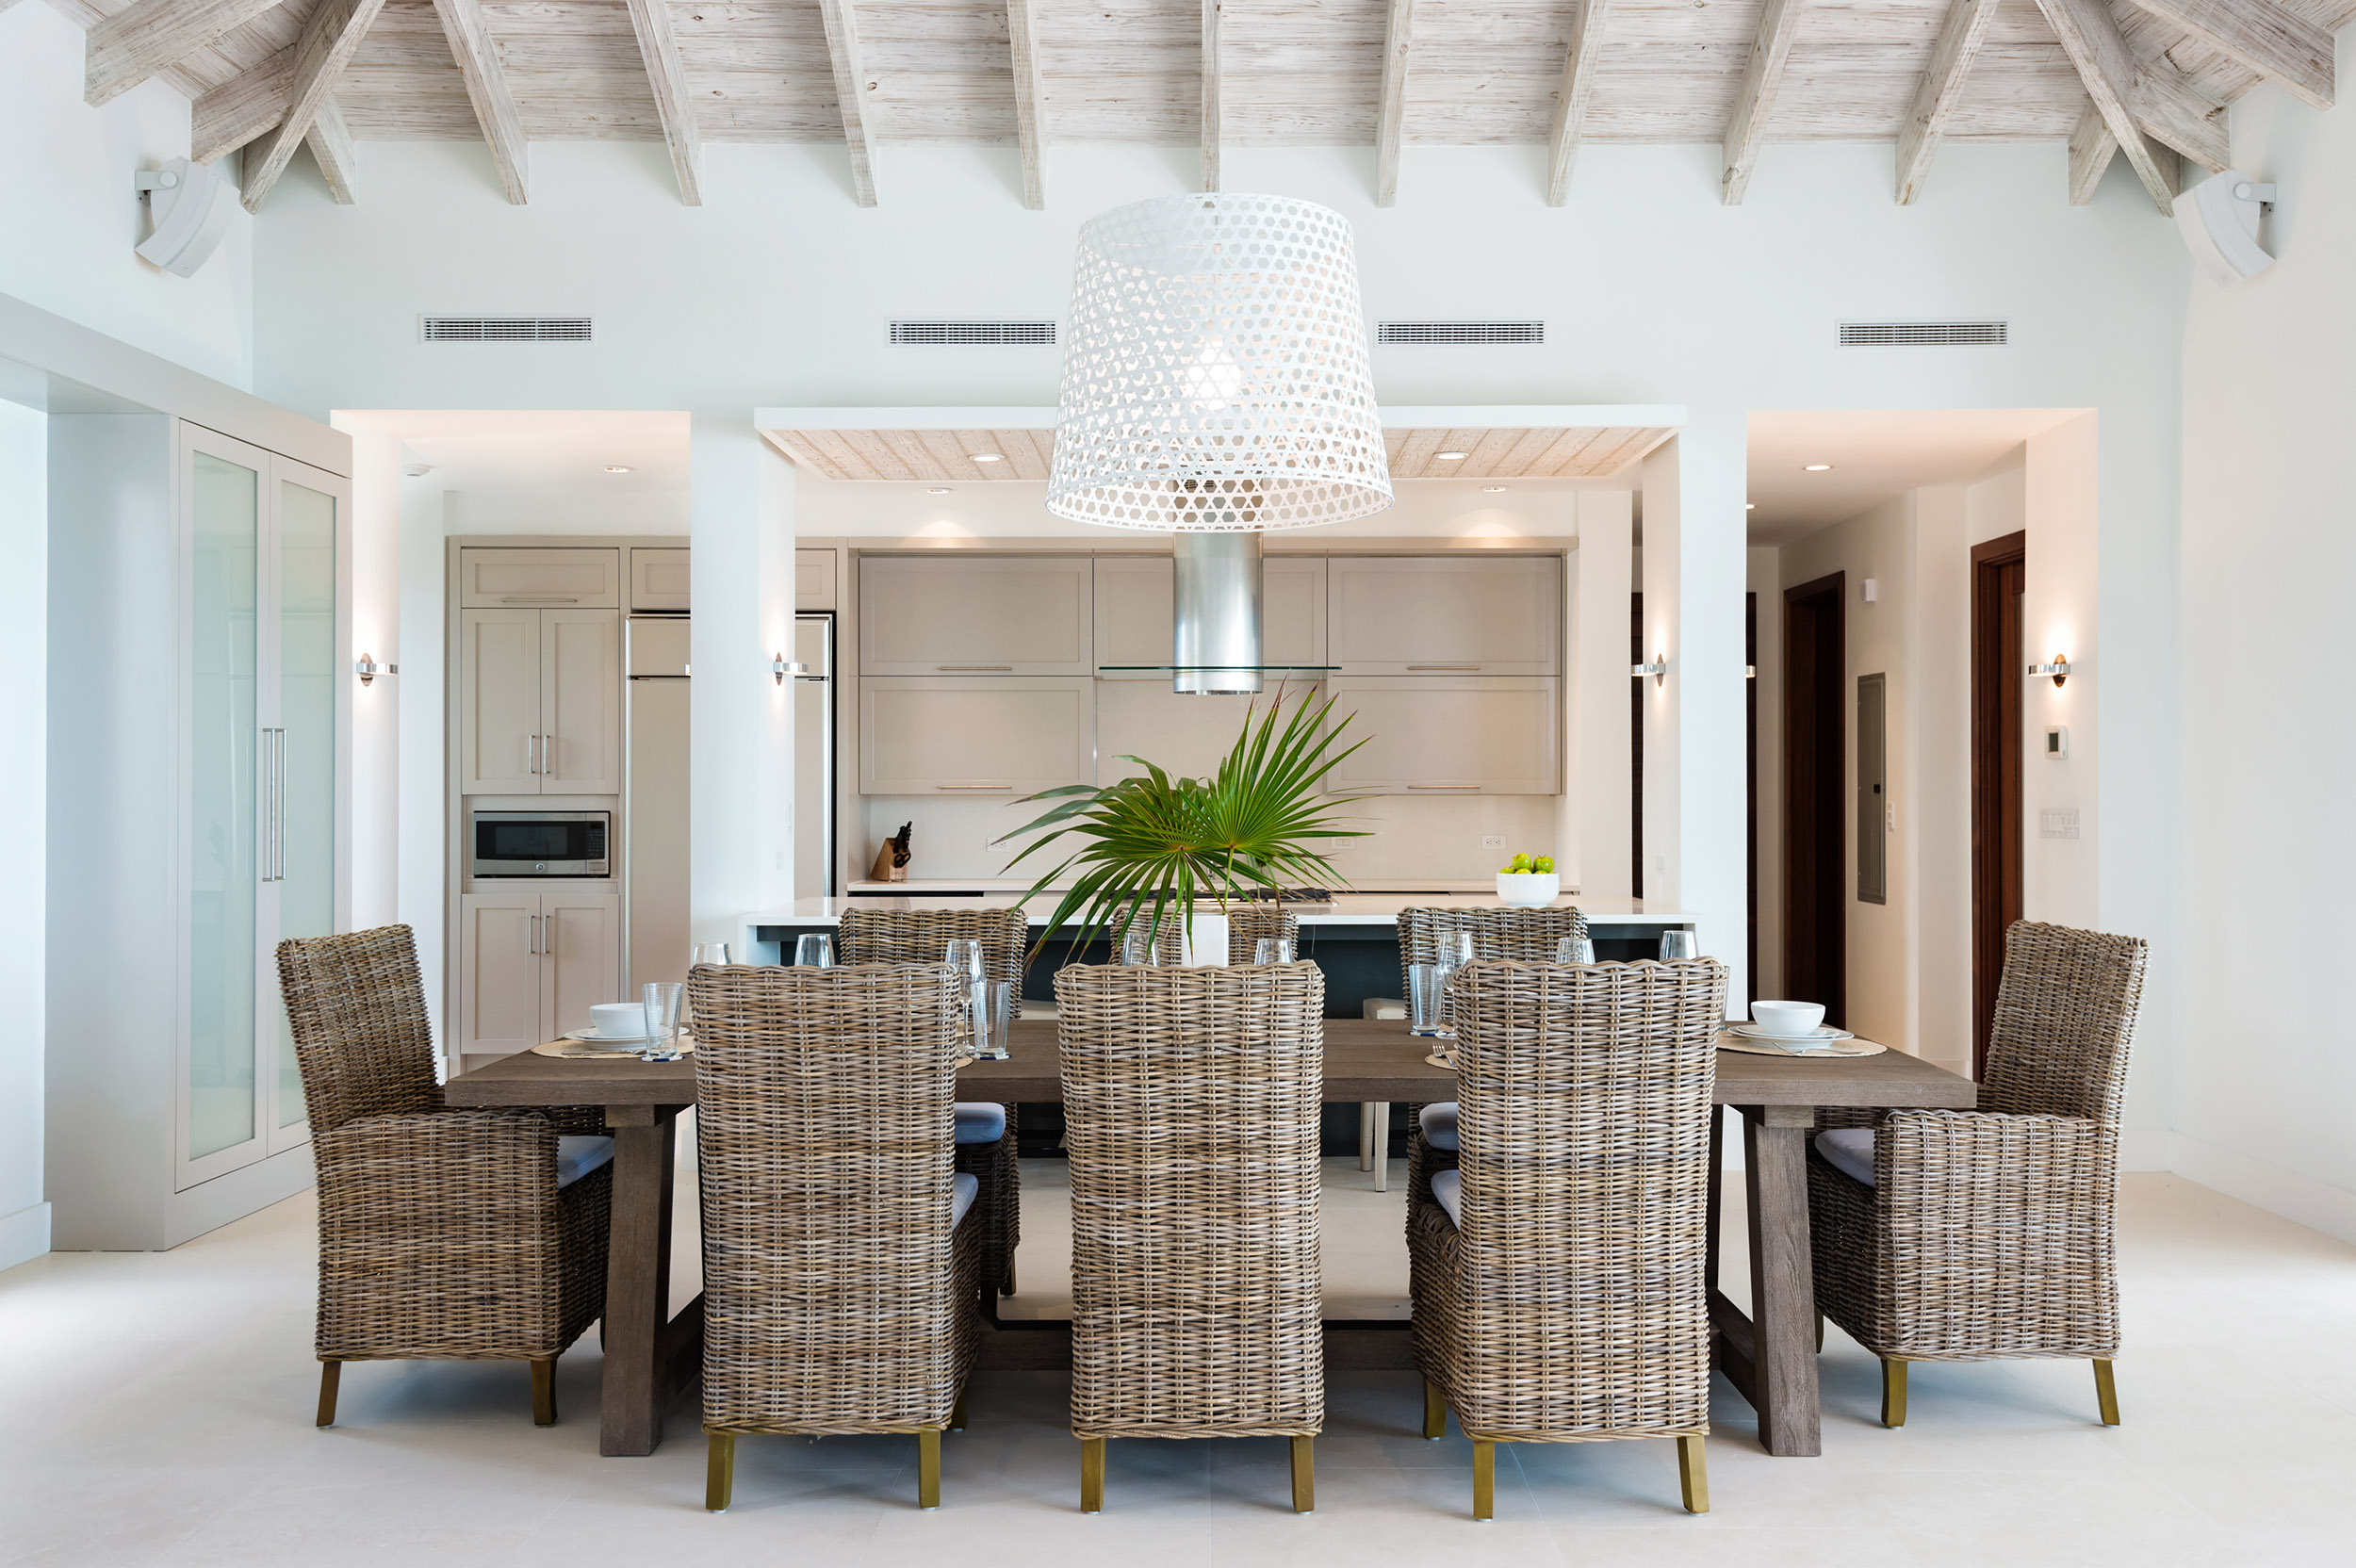 Villa Aguaribay - view of the dining area